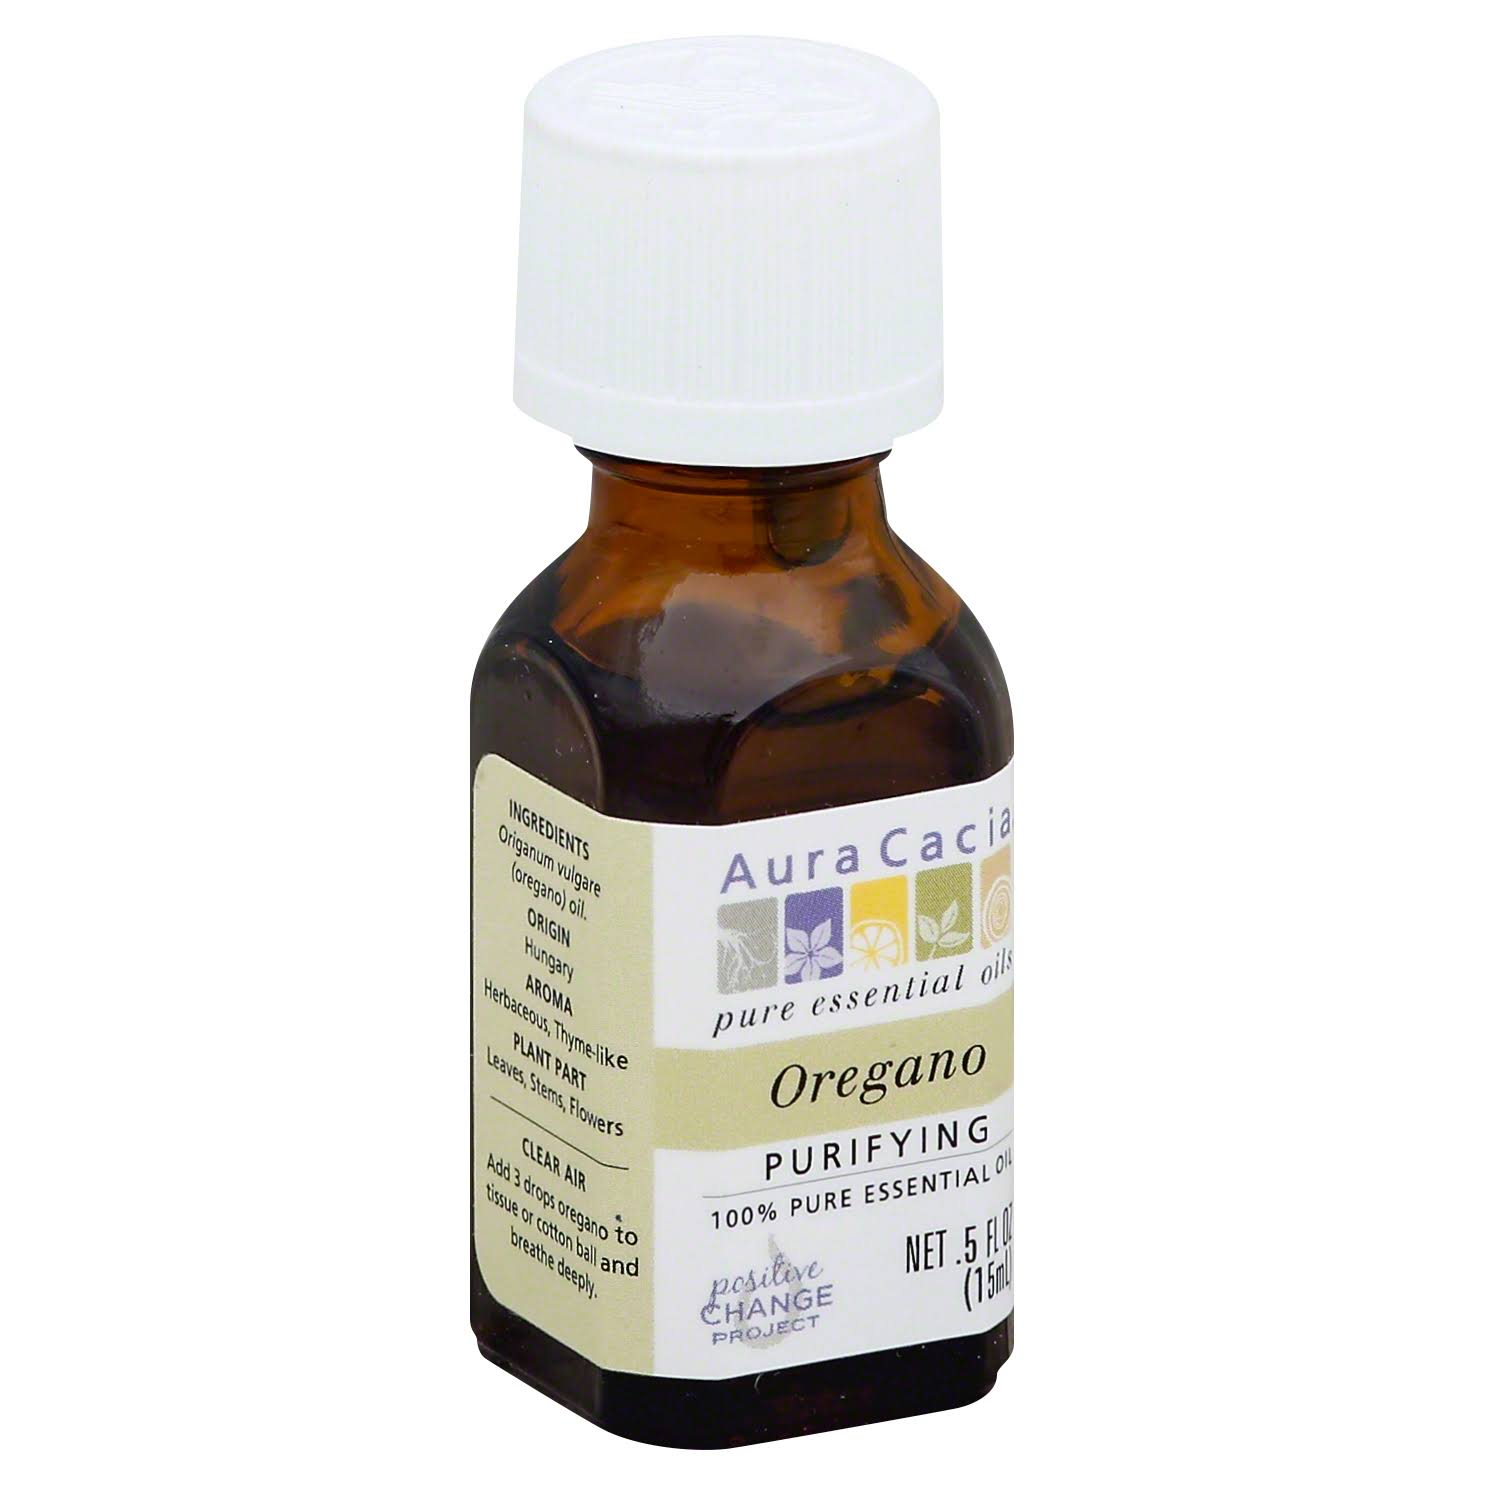 Aura Cacia Oregano Purifying Pure Essential Oil - .5oz